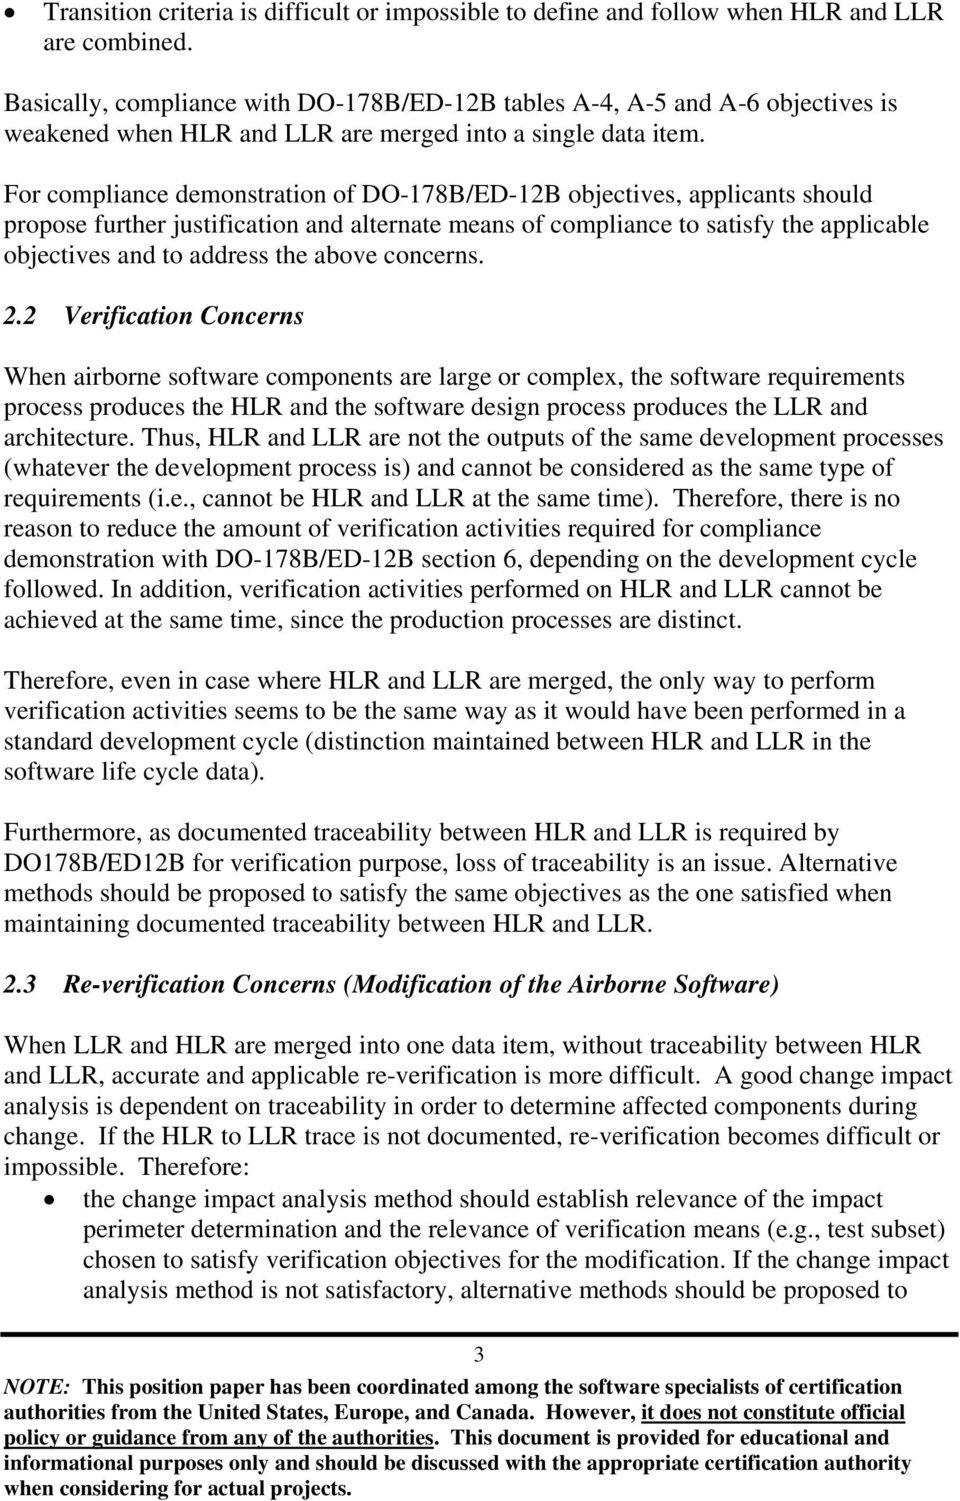 For compliance demonstration of DO-178B/ED-12B objectives, applicants should propose further justification and alternate means of compliance to satisfy the applicable objectives and to address the